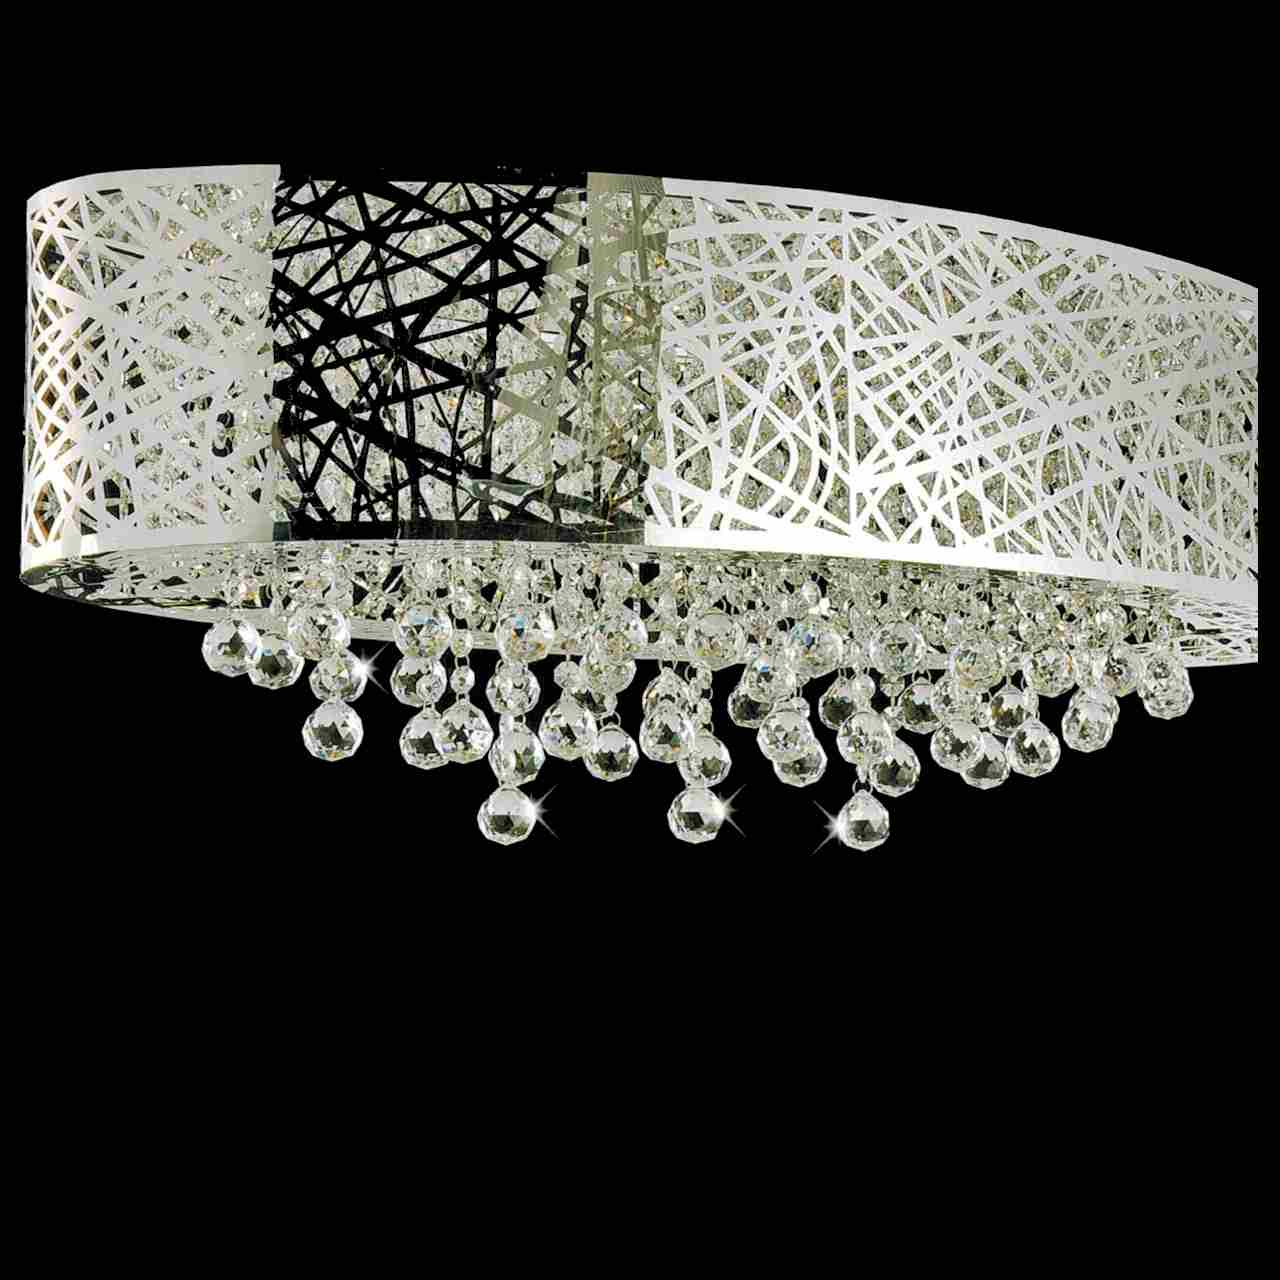 Brizzo lighting stores 32 web modern laser cut shade crystal oval picture of 32 web modern laser cut shade crystal oval flush mount chandelier stainless steel aloadofball Choice Image